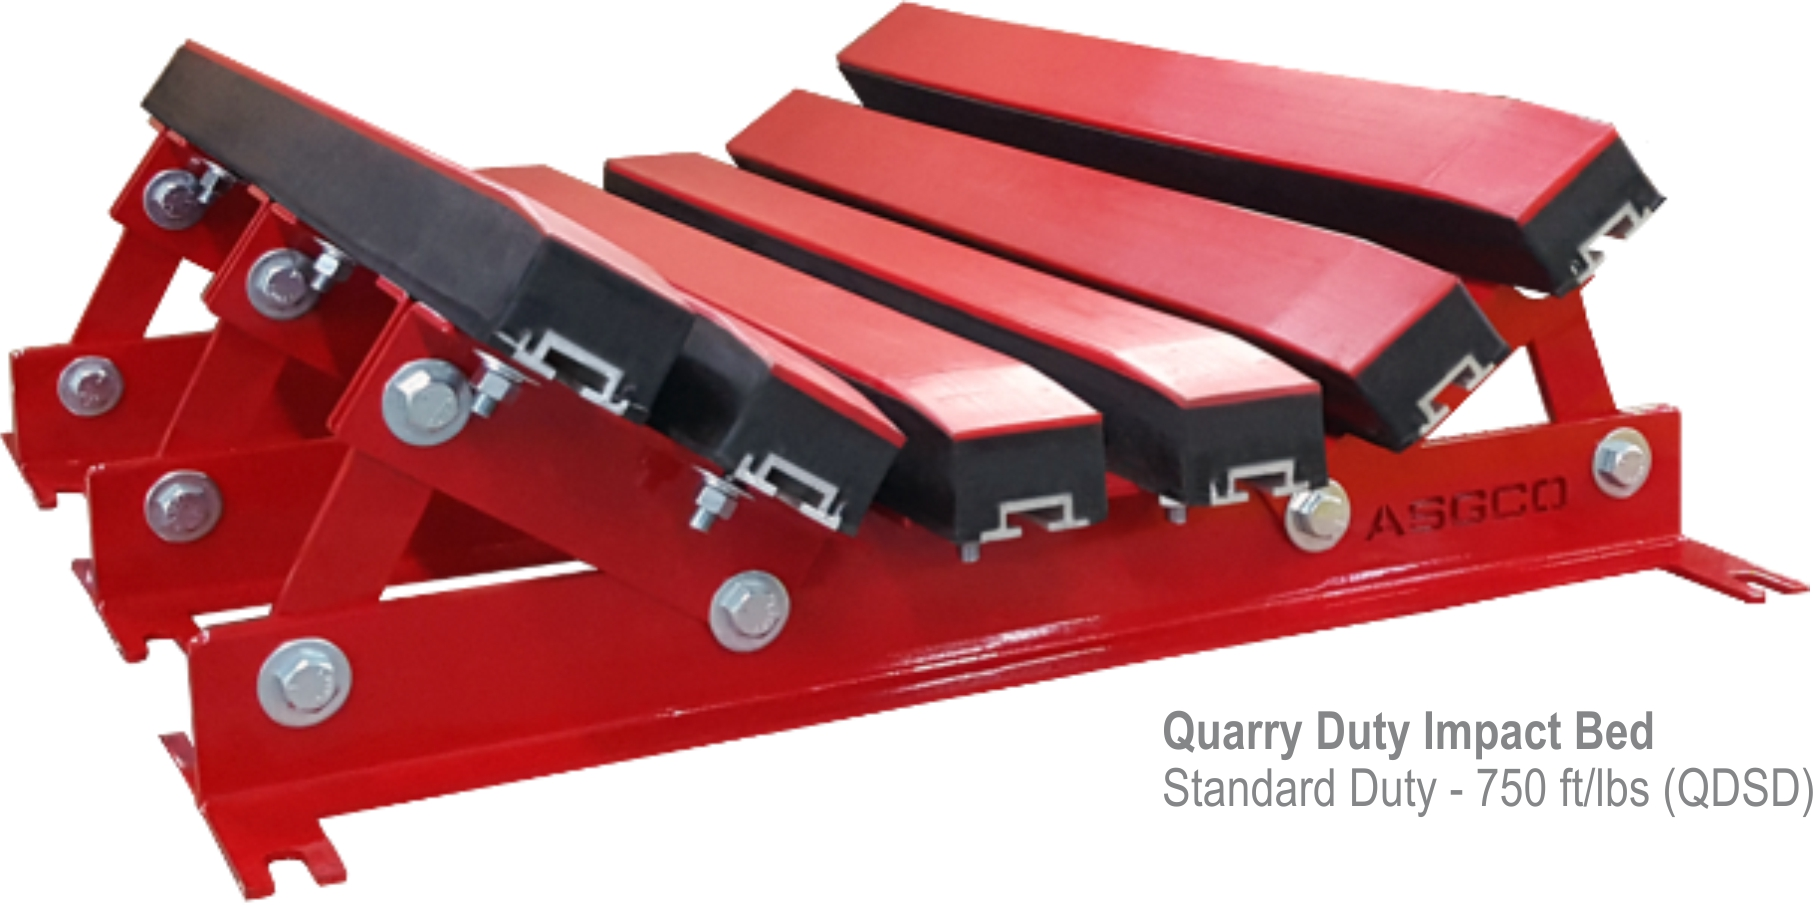 Quarry Duty Impact Beds ASGCO Conveyor Solutions